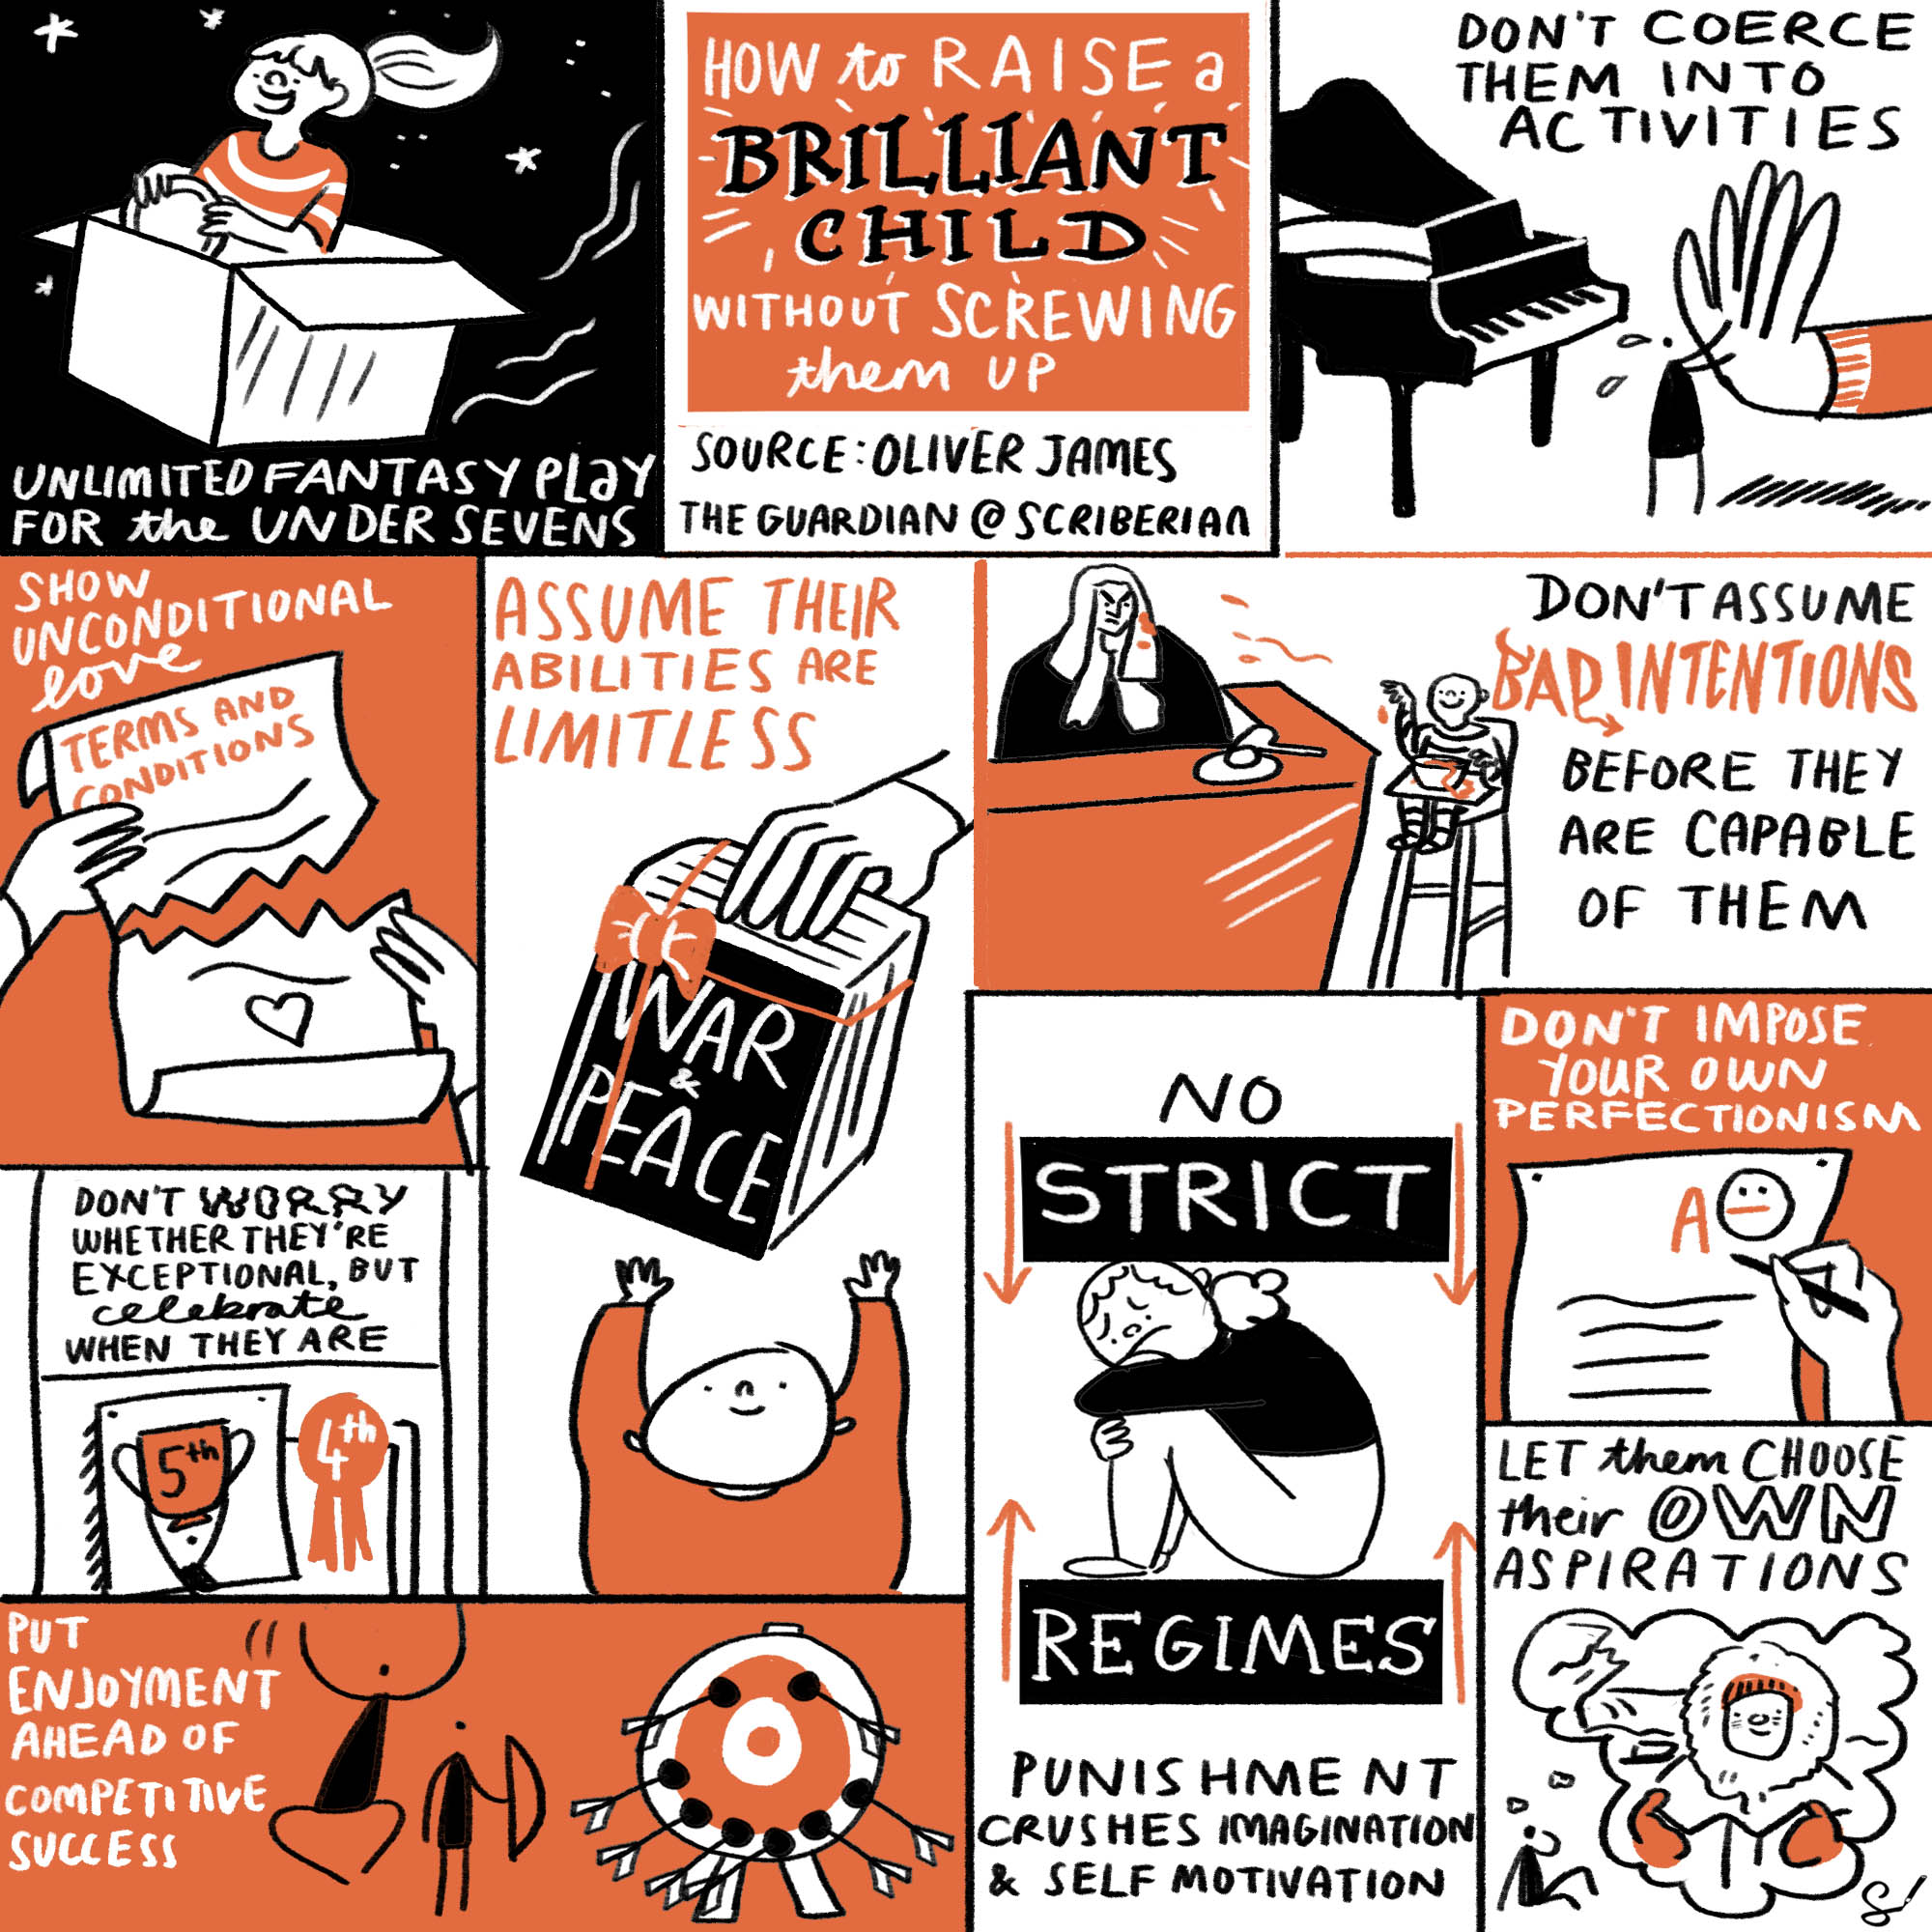 How to raise a brilliant child without screwing them up, by Oliver James. Source:  The Guardian